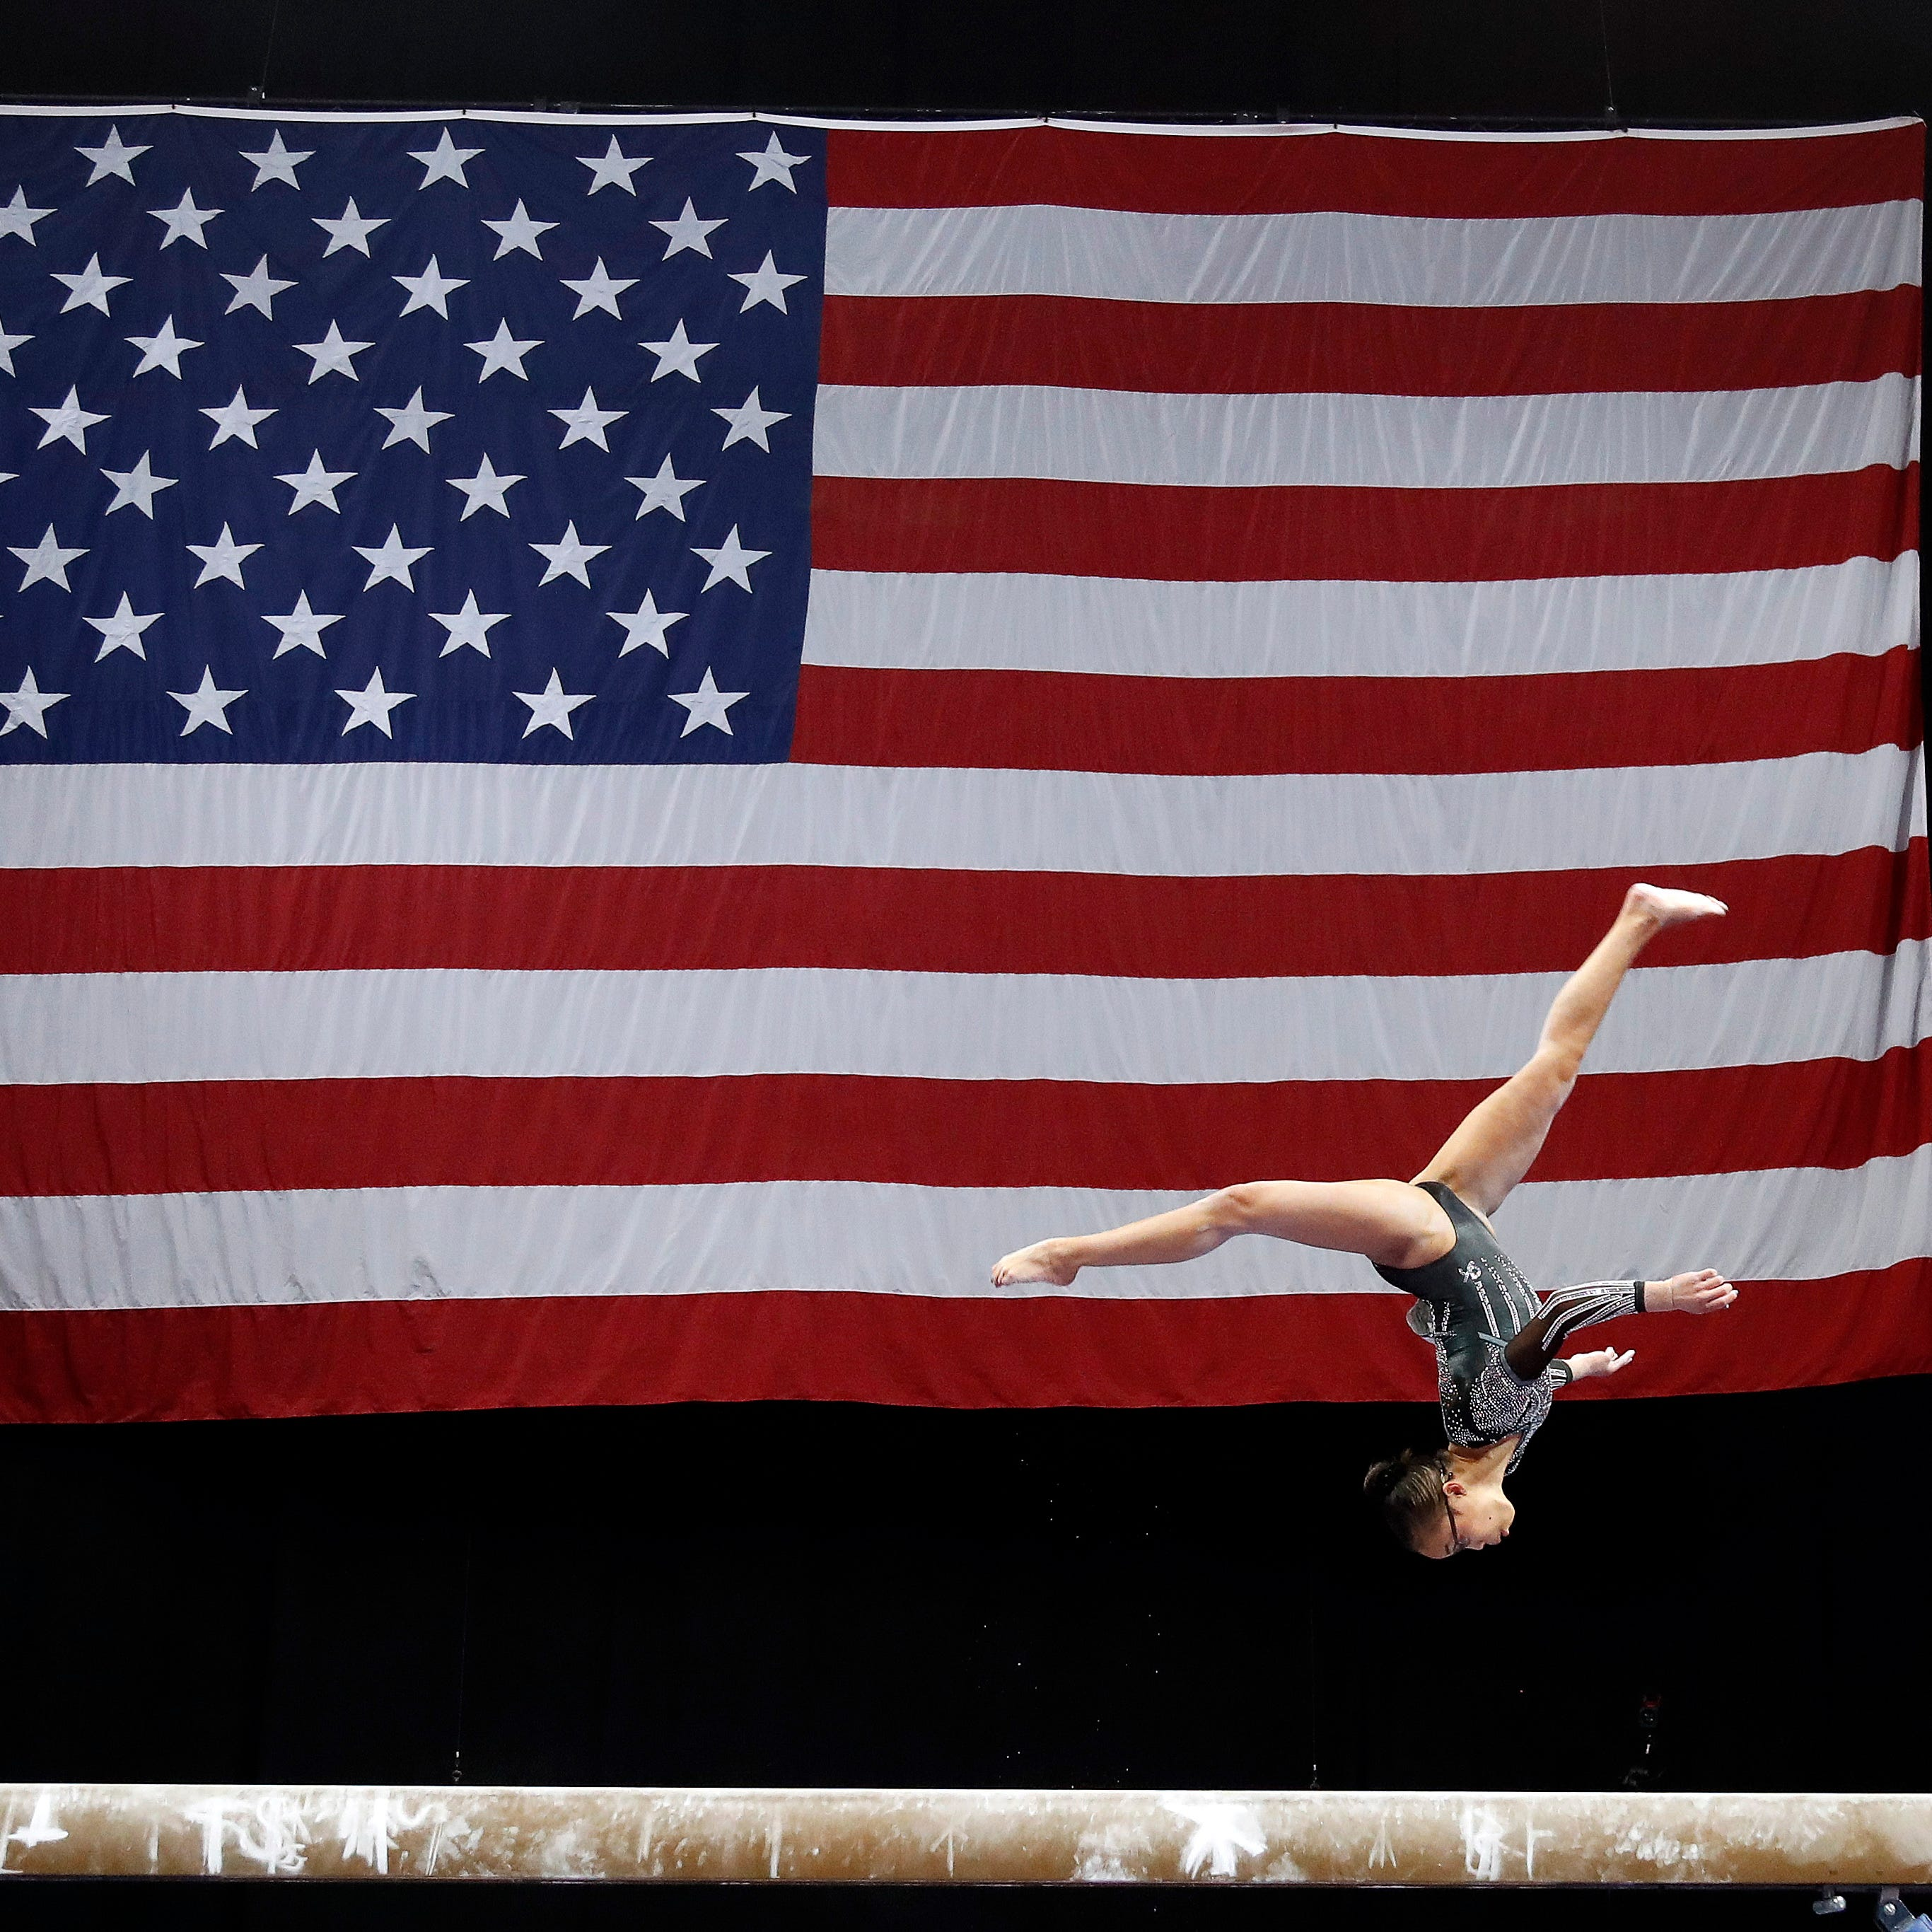 To send Olympians, a new body would have to replace USA Gymnastics